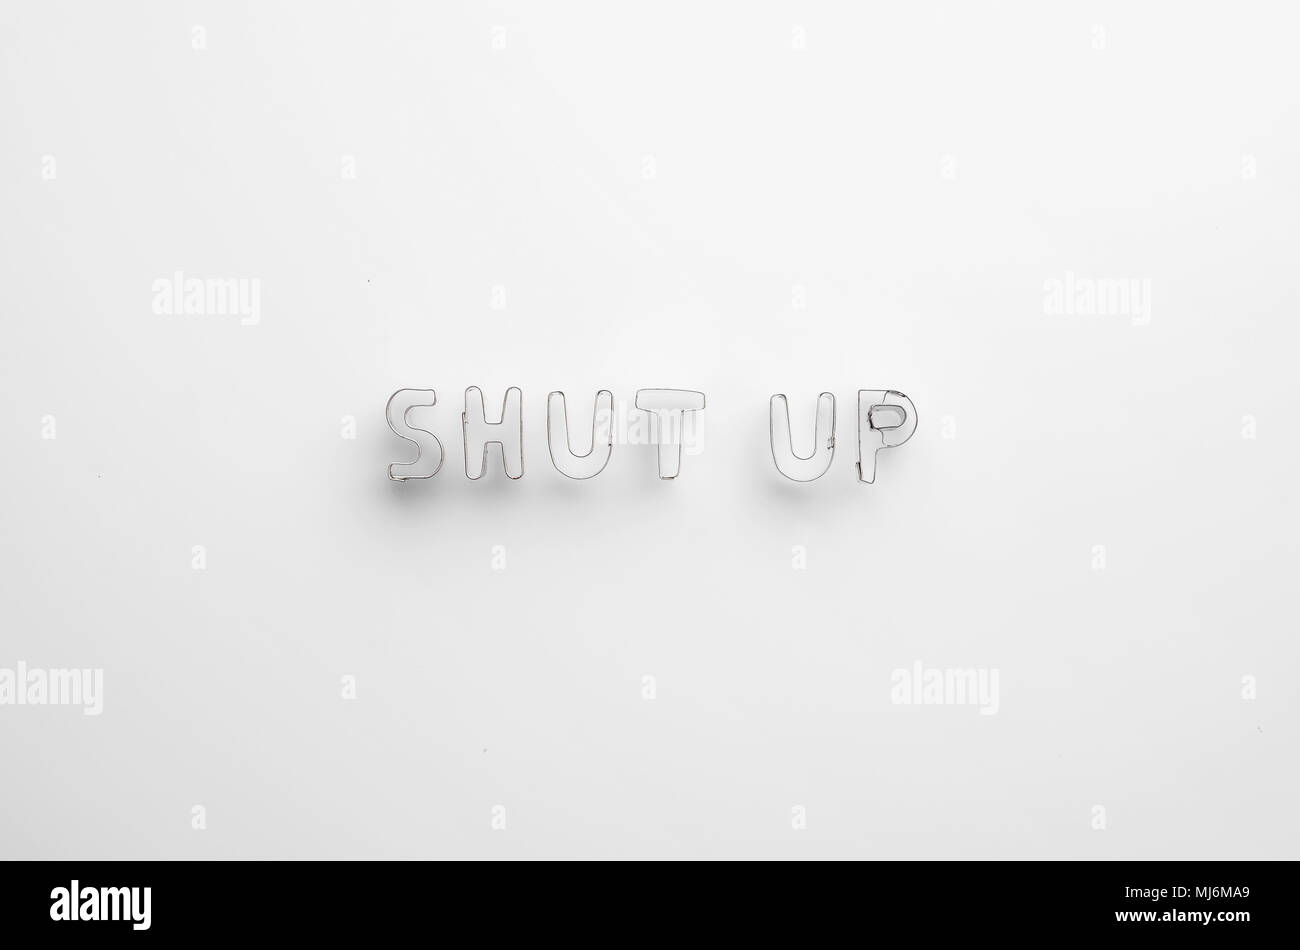 Shut up word over white background, top view - Stock Image